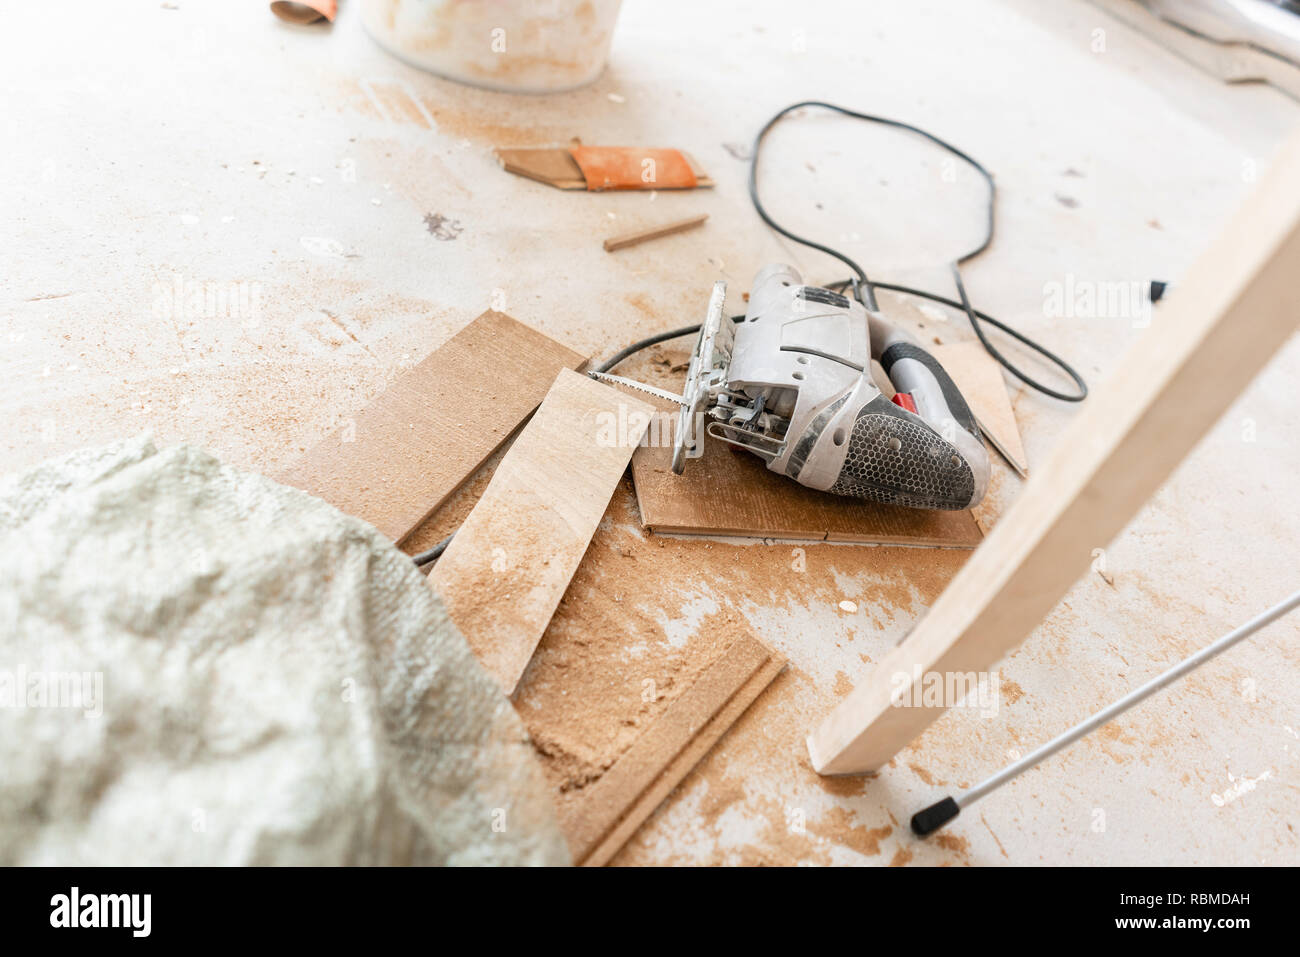 Close-up tools for cuts the laminate Board with an electrofret saw. installing new wooden laminate flooring. concept of repair in house. - Stock Image